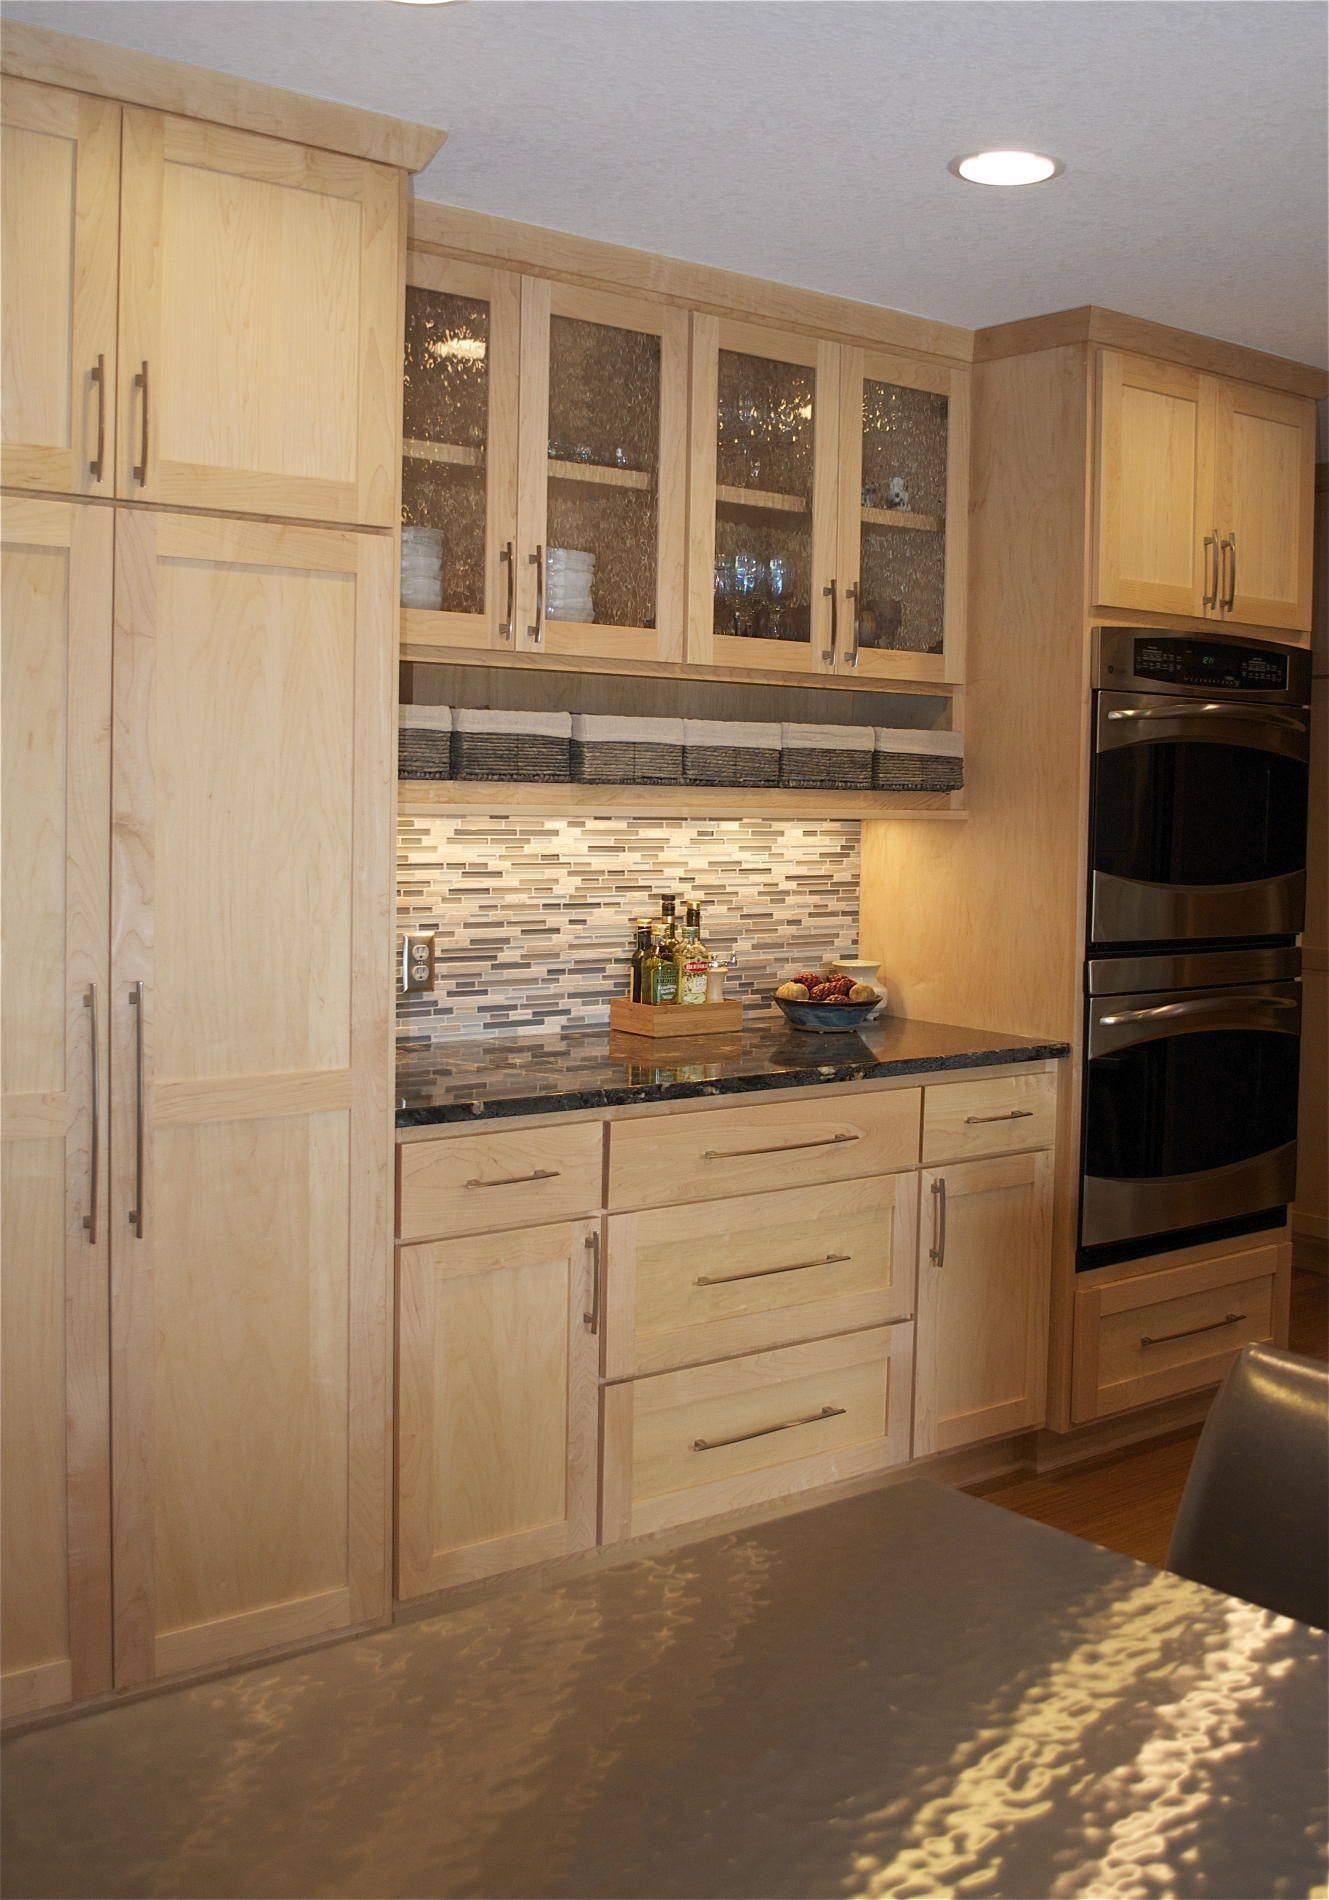 Exactly What We Re Looking For Wooden Kitchen Cabinets Maple Cabinets Maple Kitchen Cabinets